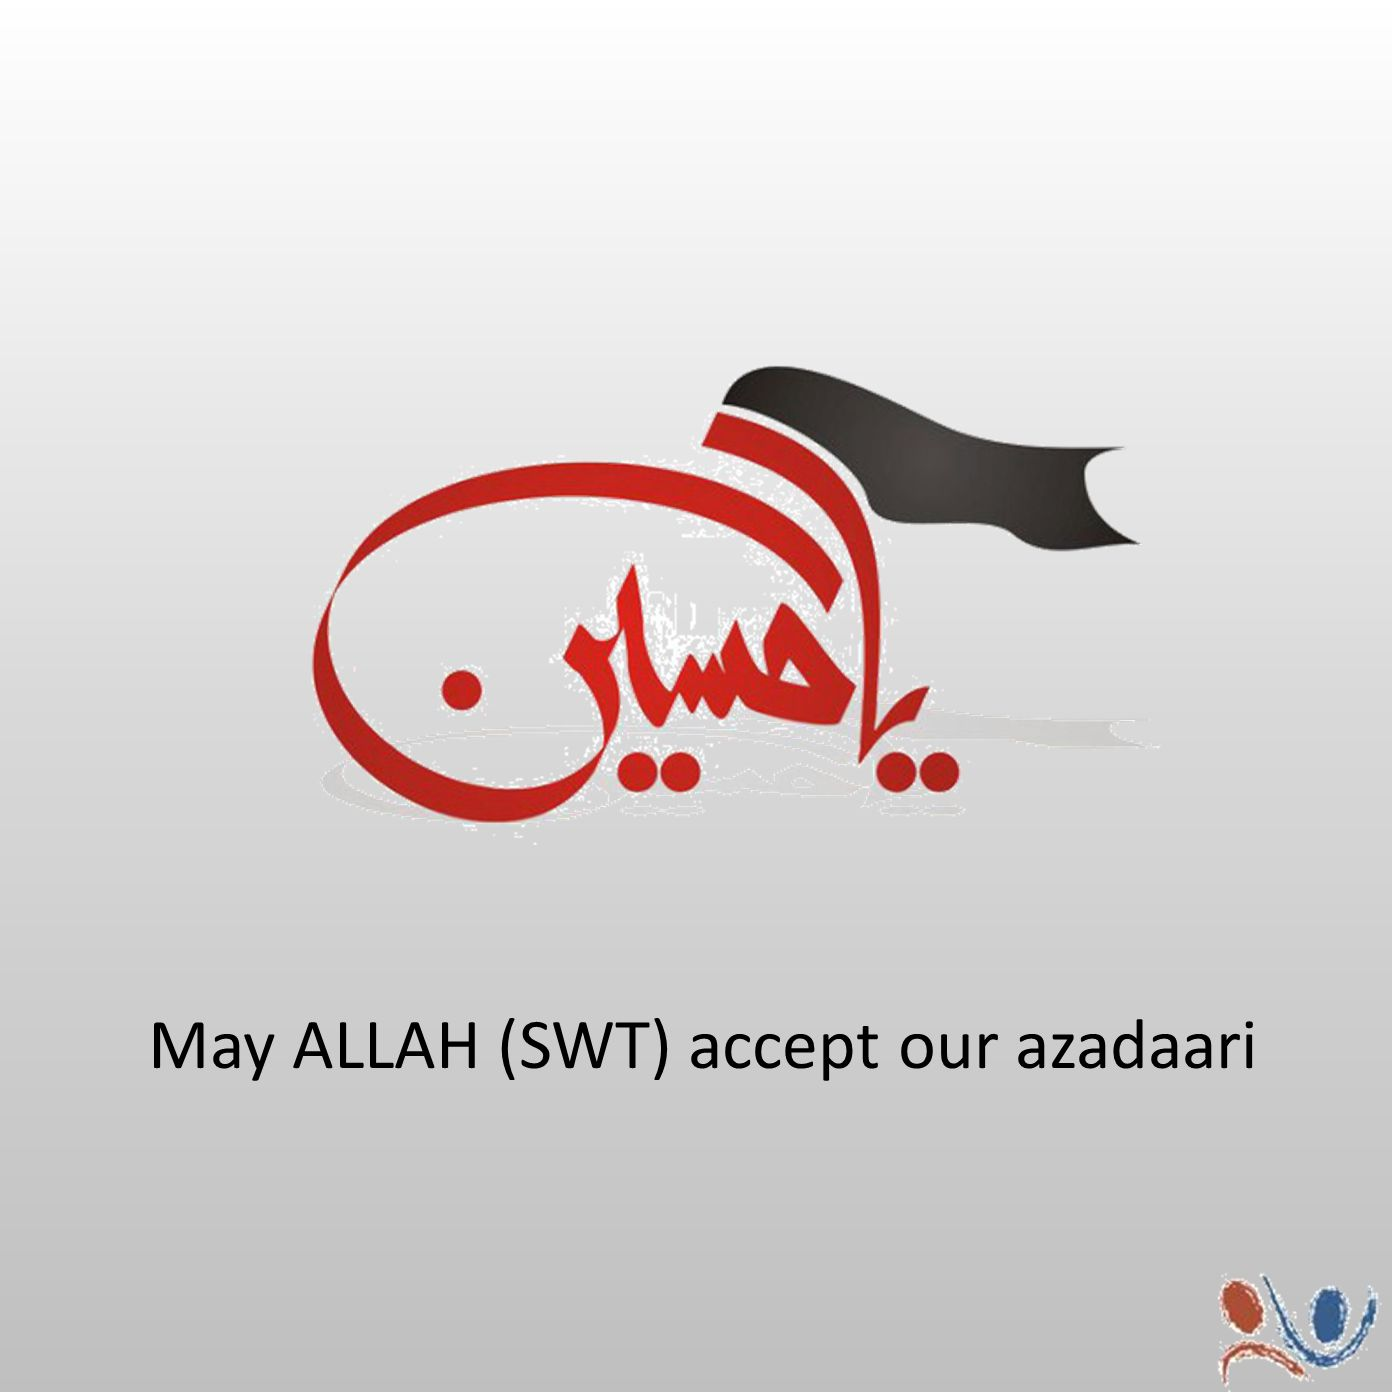 May ALLAH (SWT) accept our azadaari